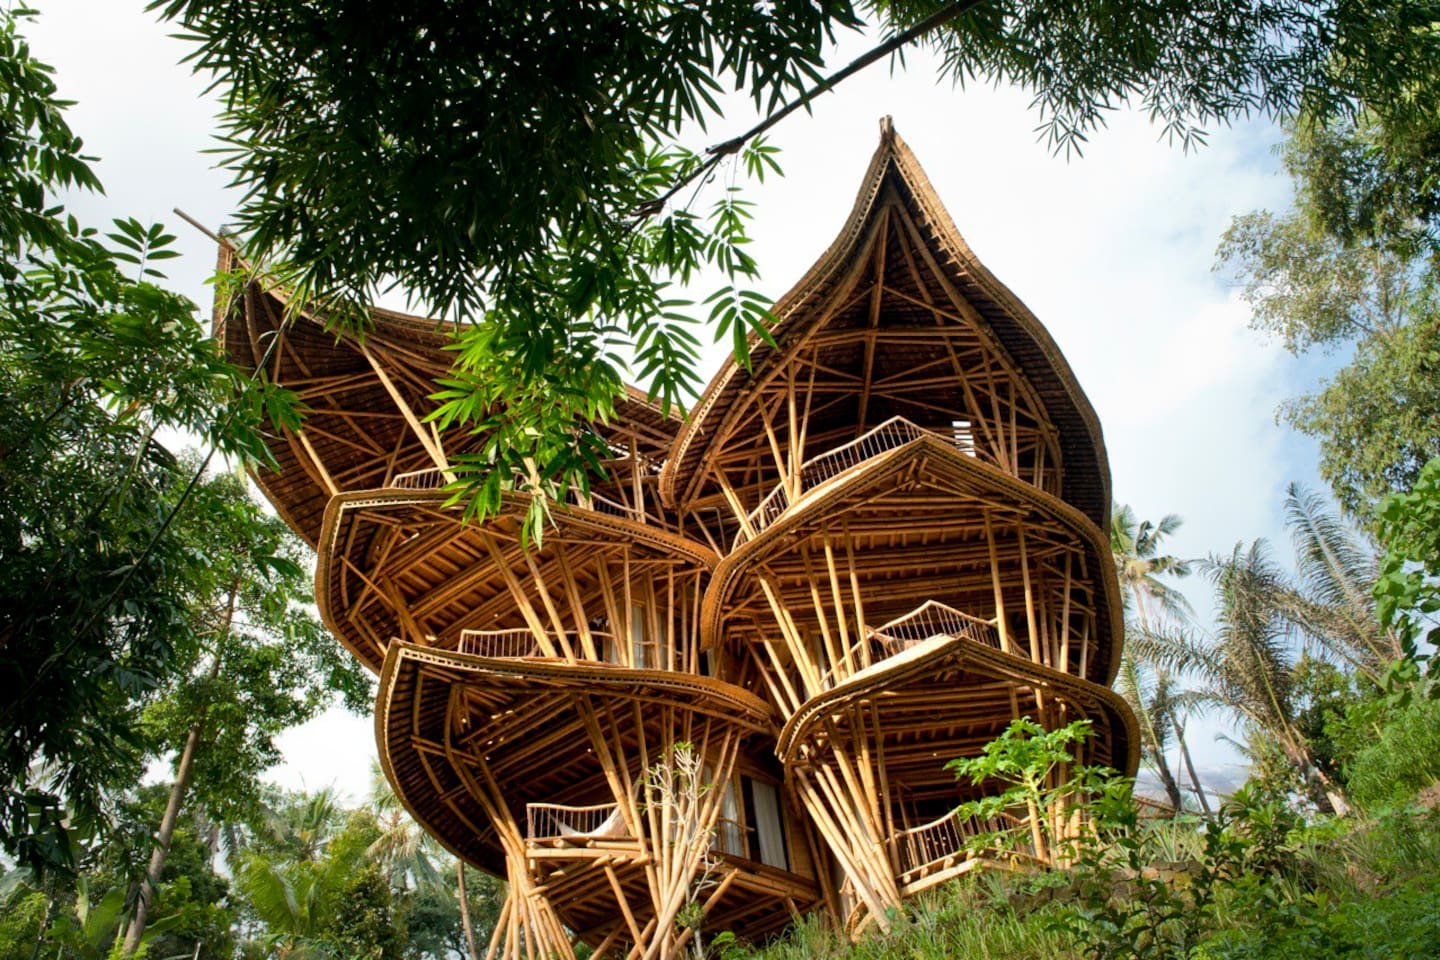 extraordinary 5 floor bamboo palace - houses for rent in